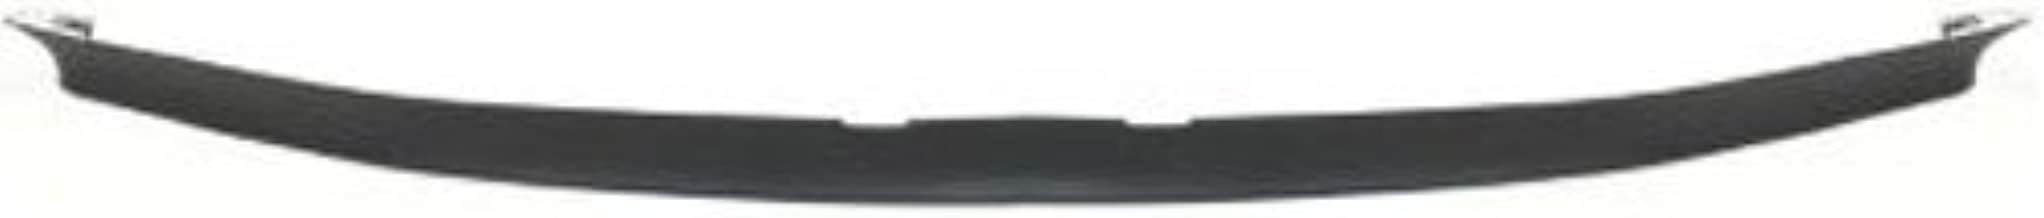 CPP CAPA Textured Front Air Dam Deflector Valance Apron for Ford F-250 SD, F-350 SD